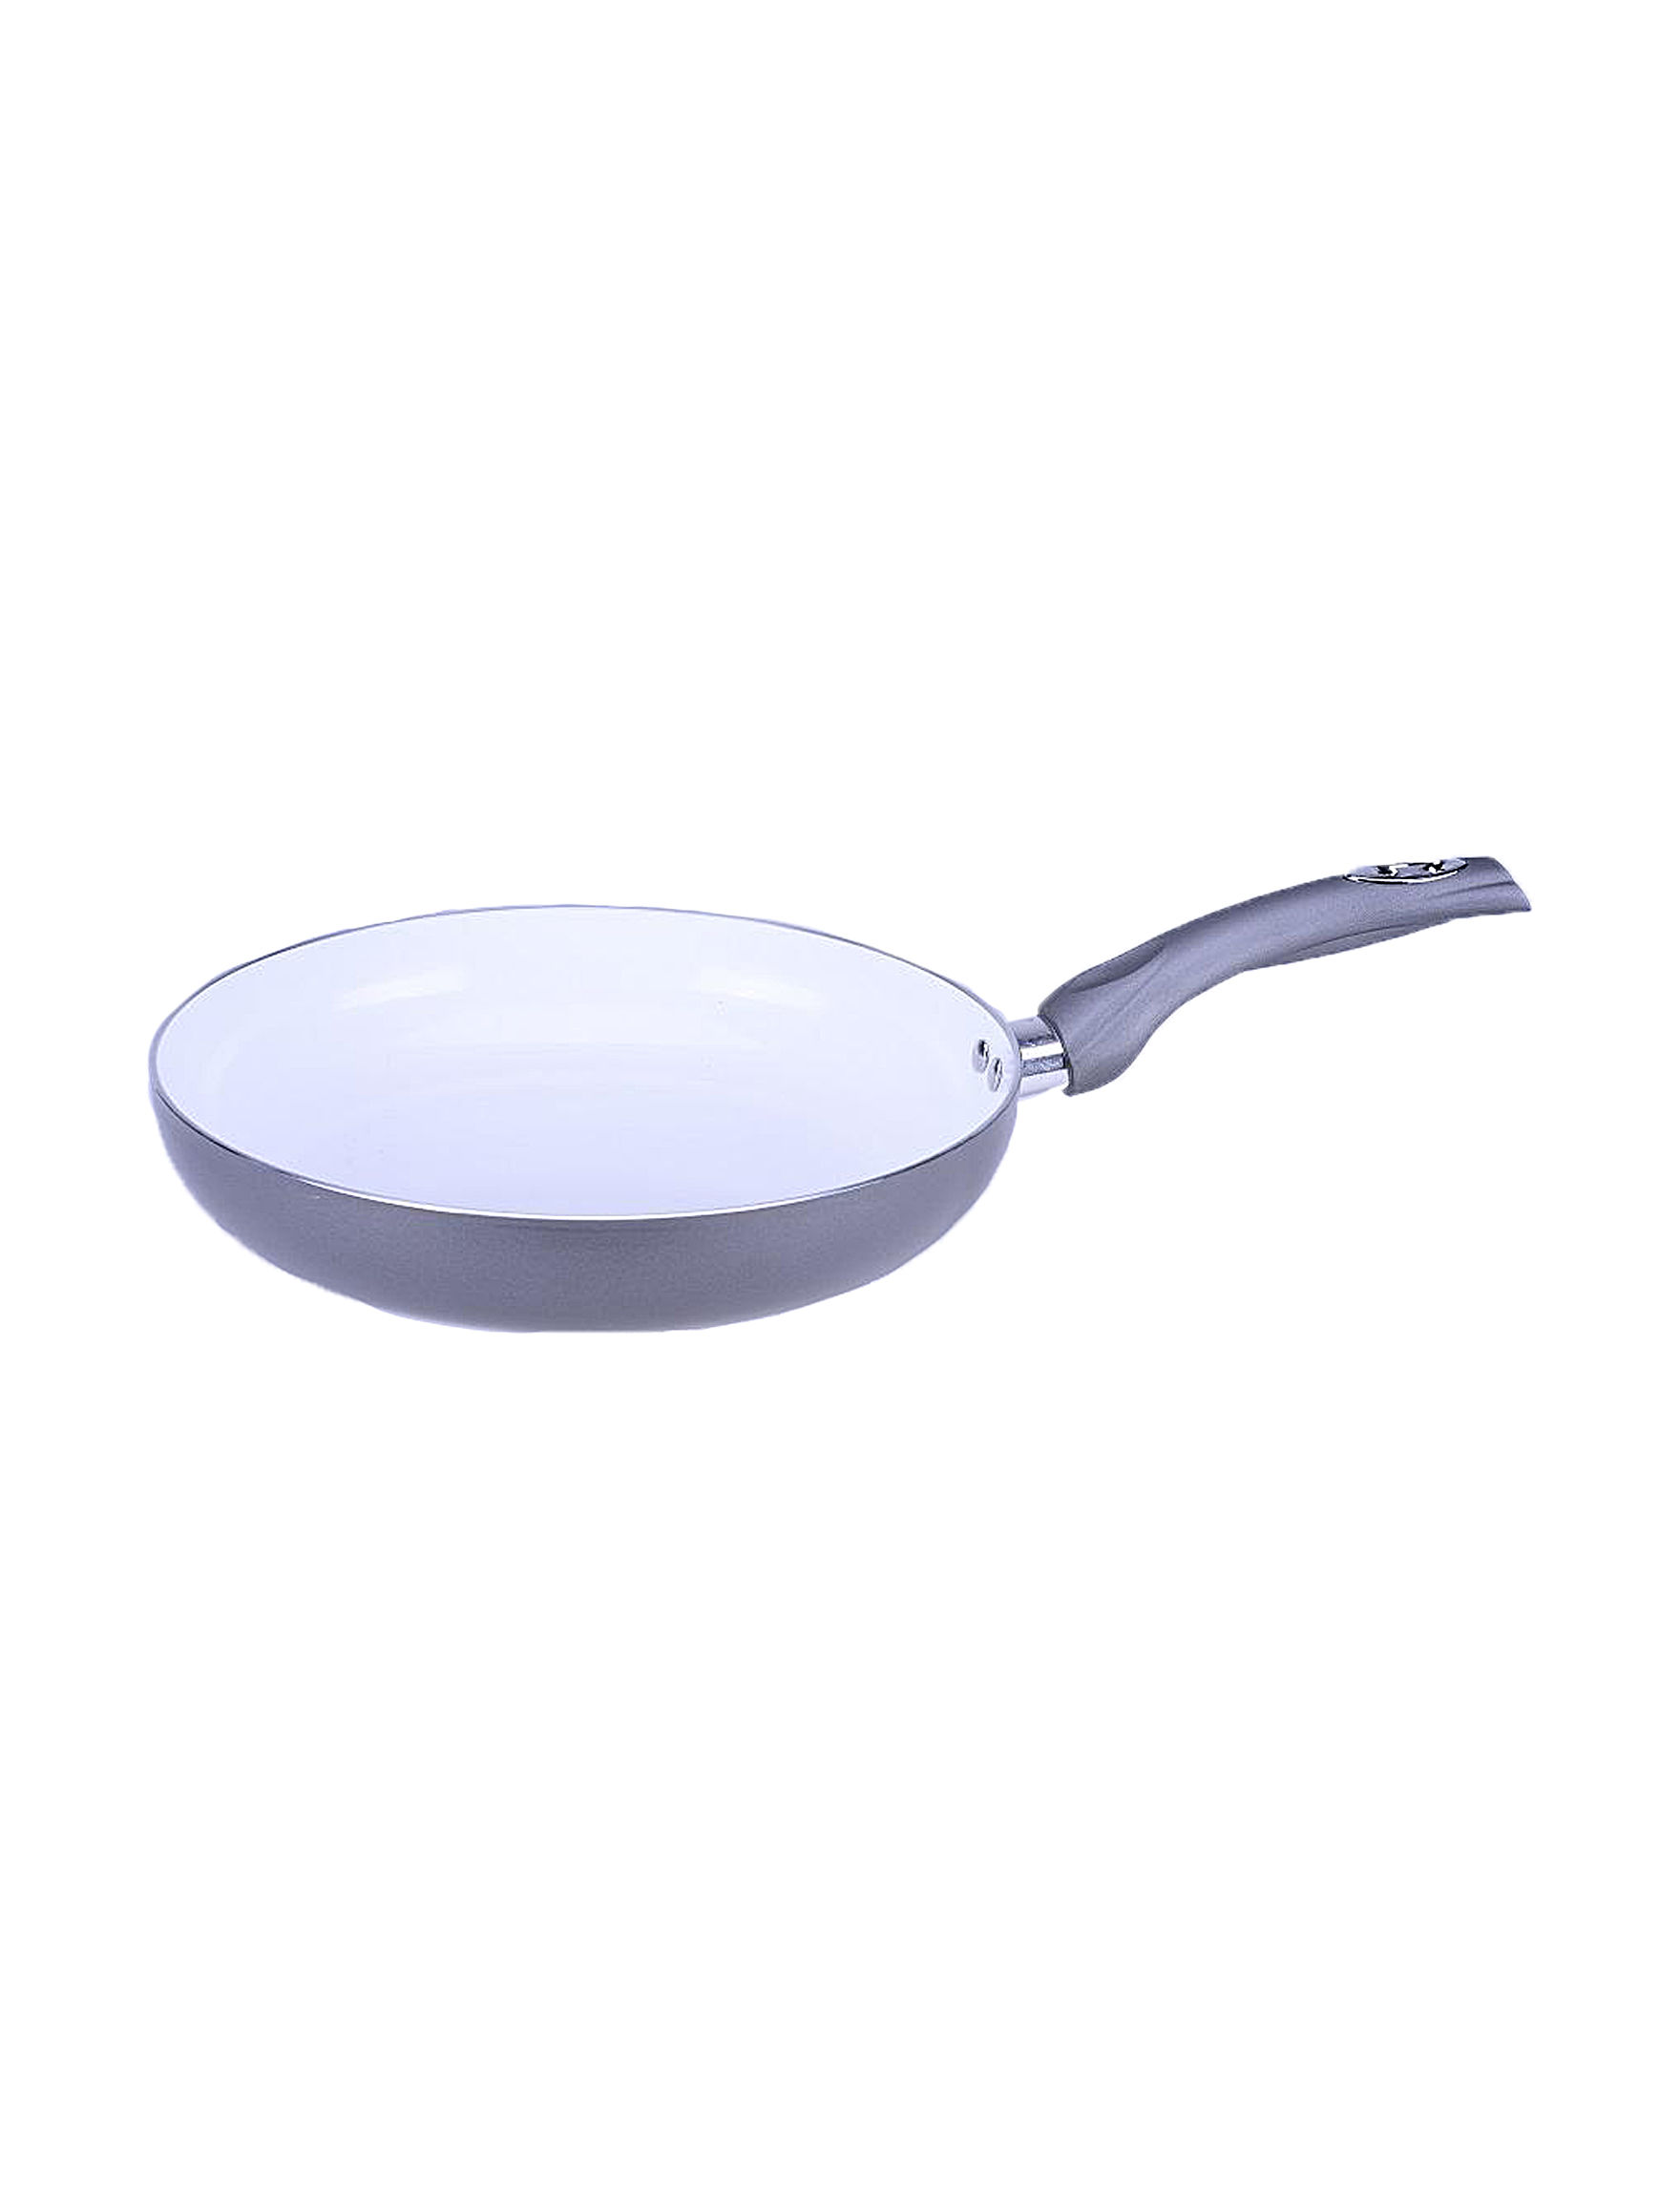 Diamond Home Grey Frying Pans & Skillets Cookware